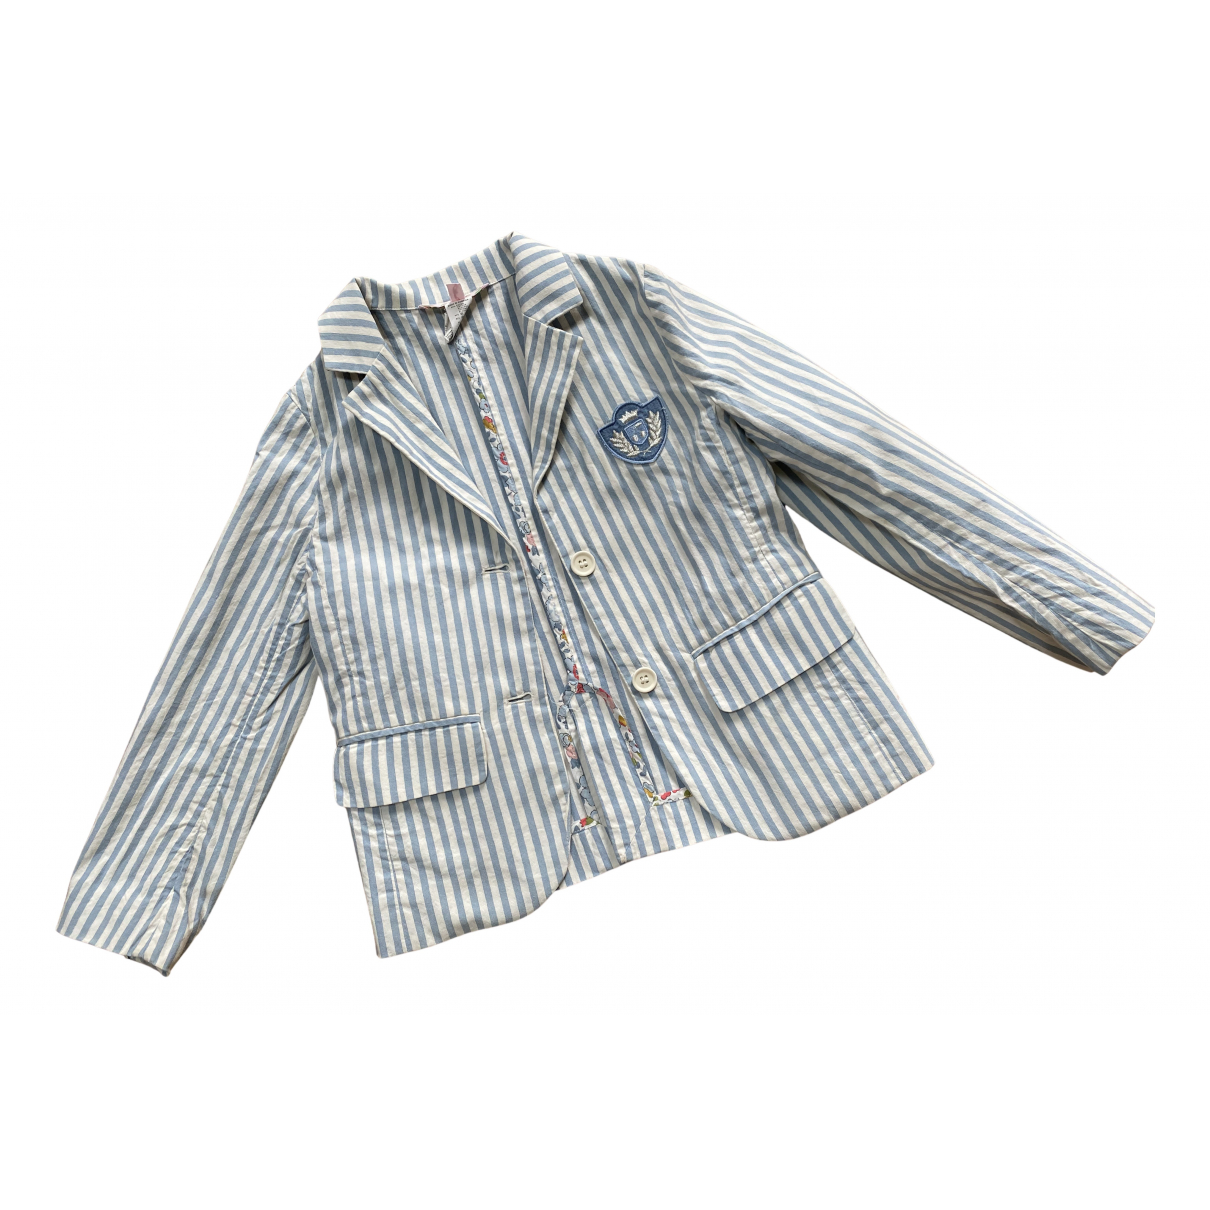 Bonpoint N Blue Cotton jacket & coat for Kids 6 years - up to 114cm FR